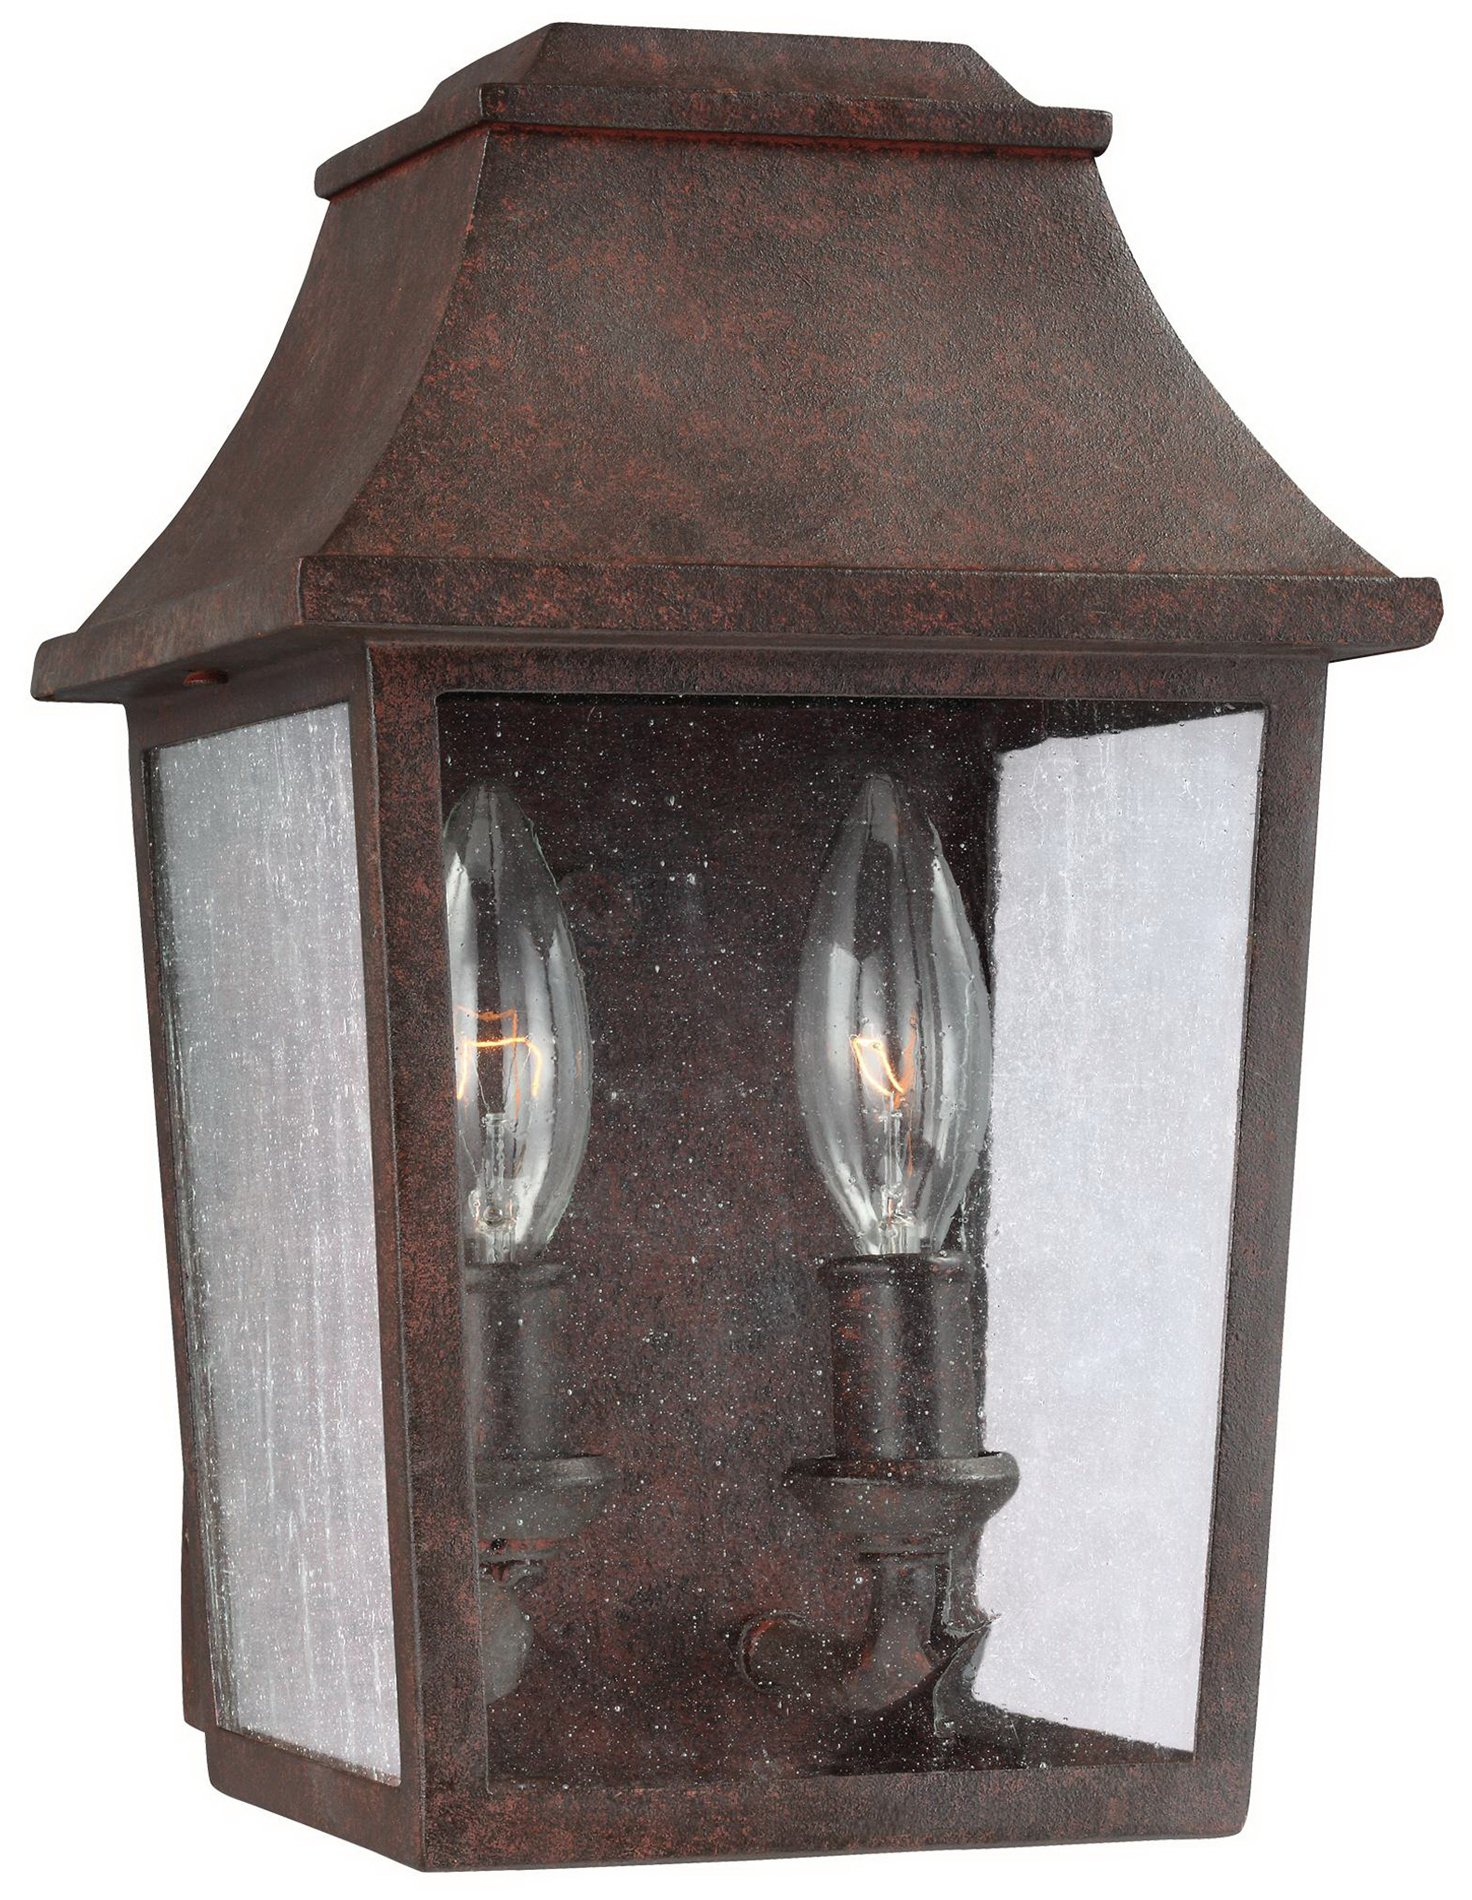 Wall Sconces Murray Feiss : Murray Feiss OL11900PCR Estes Traditional Outdoor Wall Sconce MRF-OL11900PCR